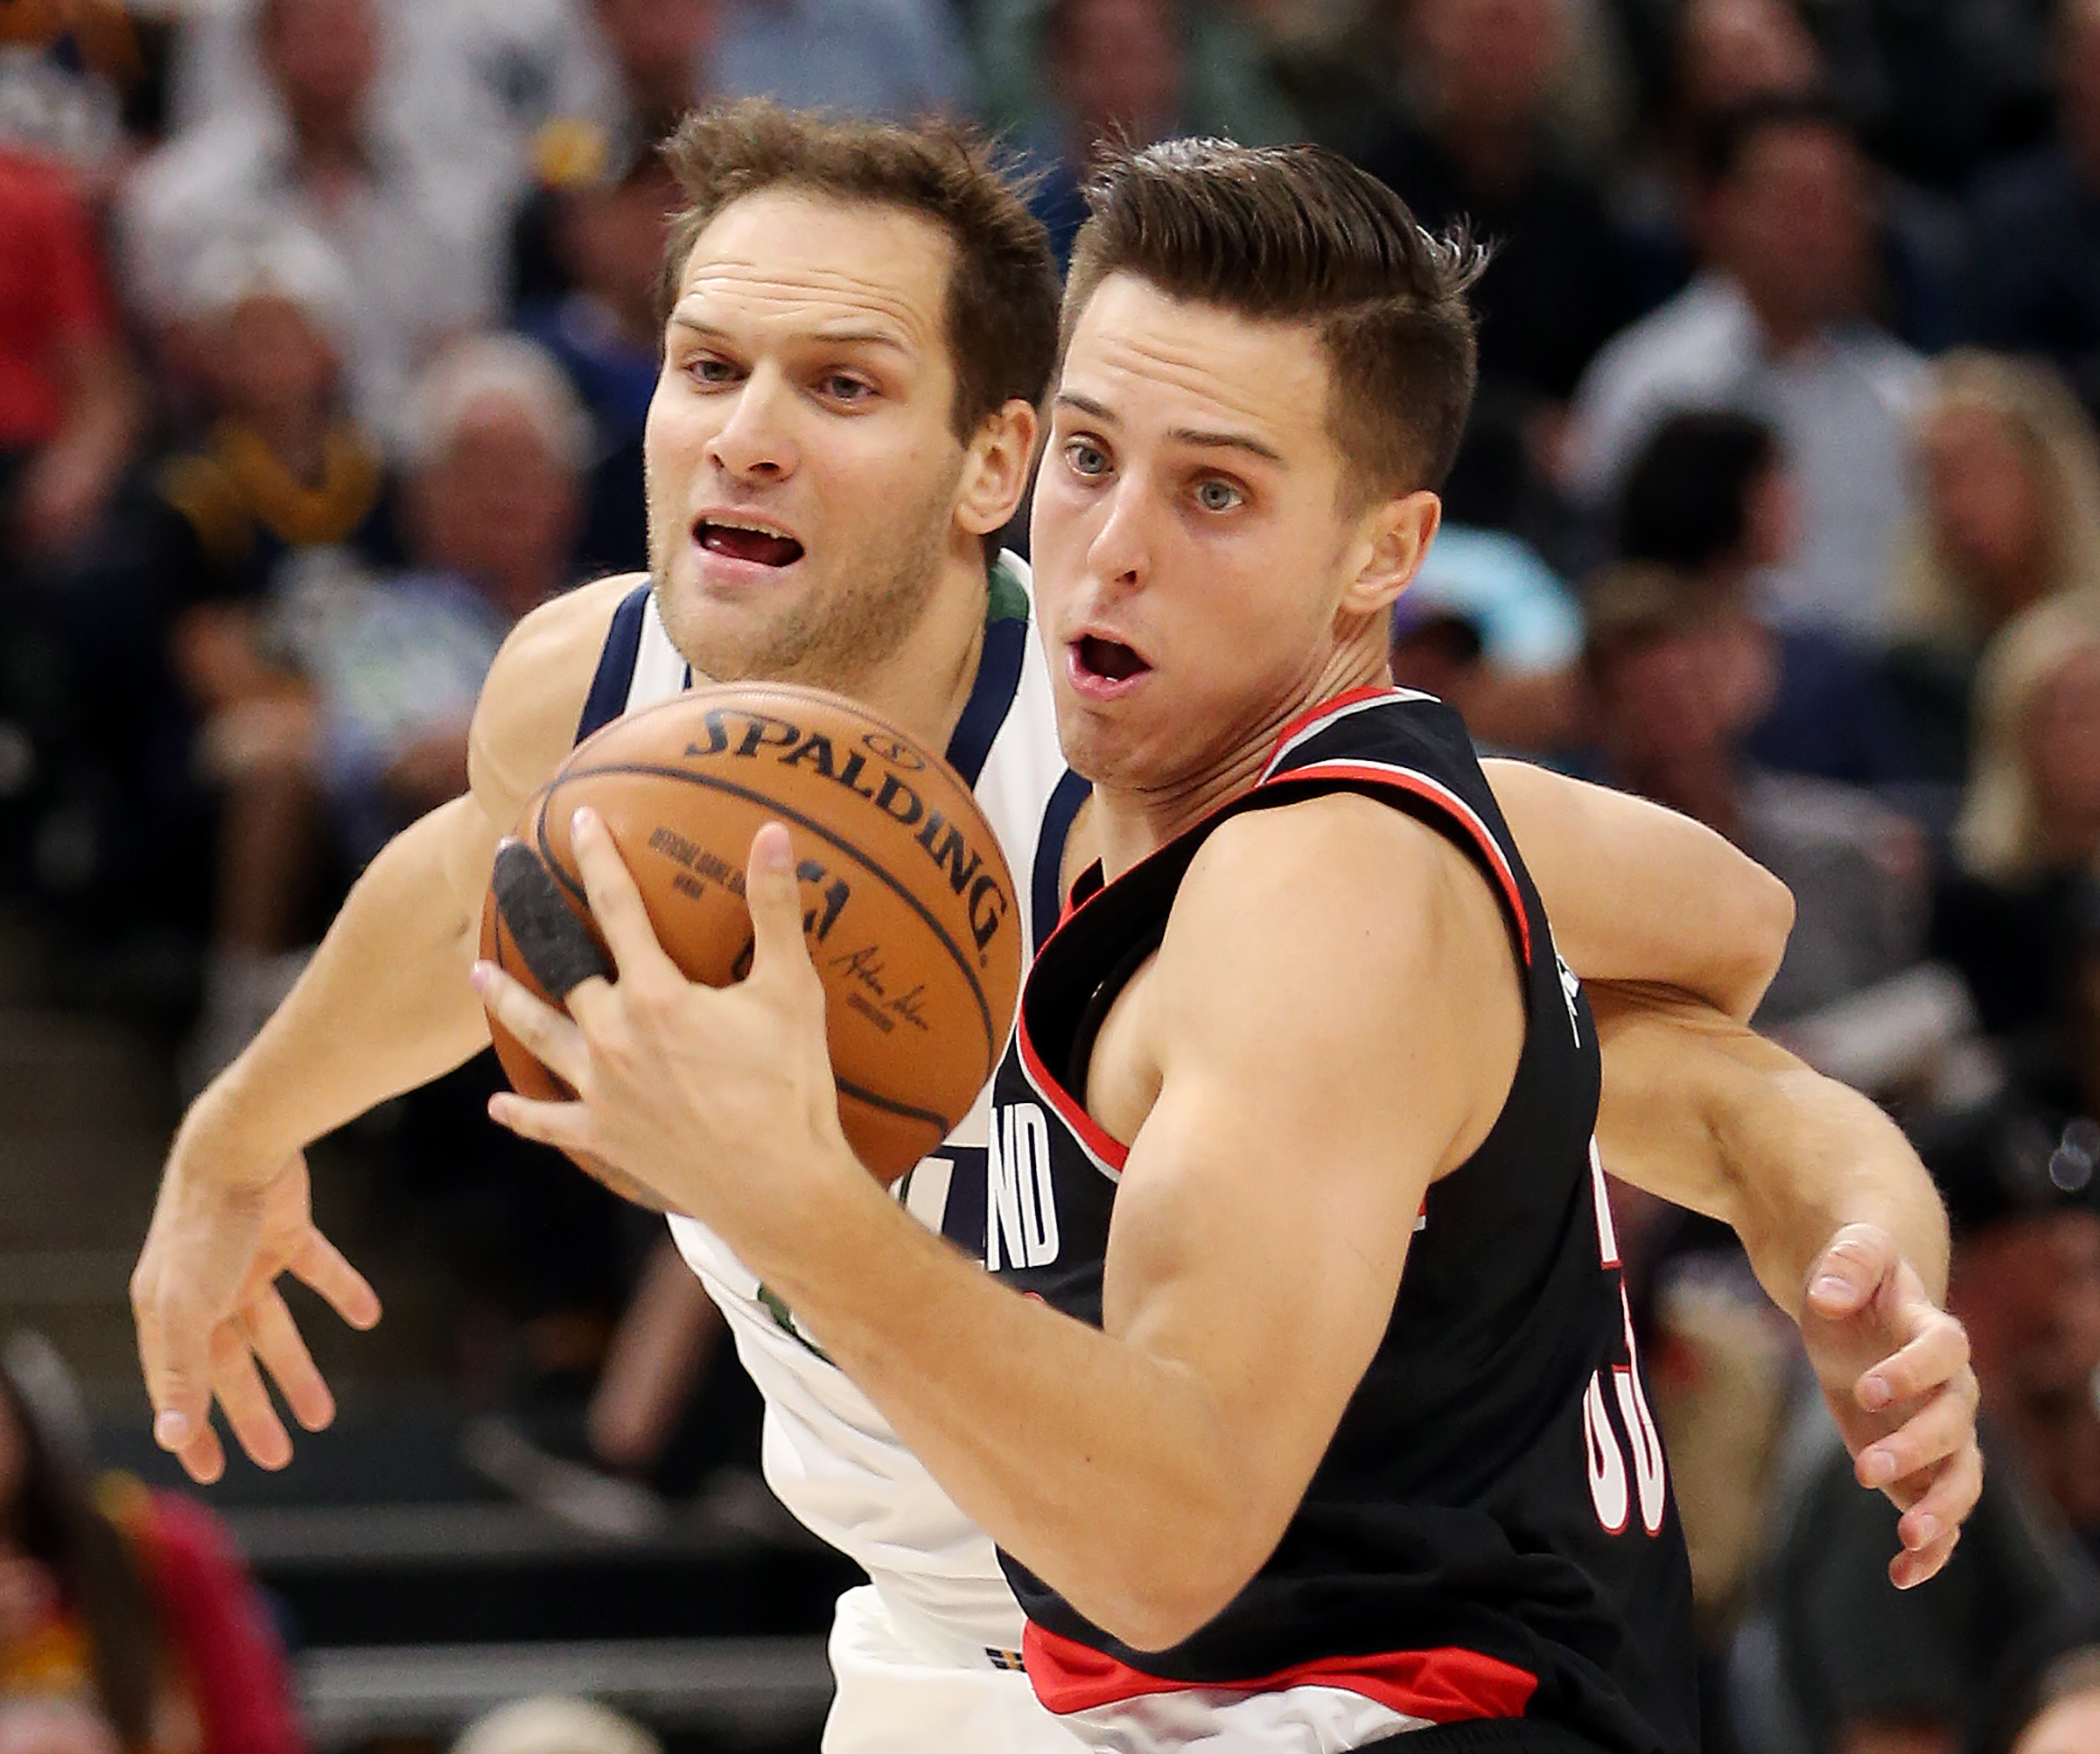 Portland Trail Blazers forward Zach Collins (33) catches a pass over Utah Jazz forward Bojan Bogdanovic (44) as the Utah Jazz and the Portland Trail Blazers play a preseason game at Vivint Smart Home Arena in Salt Lake City on Wednesday, Oct. 16, 2019.